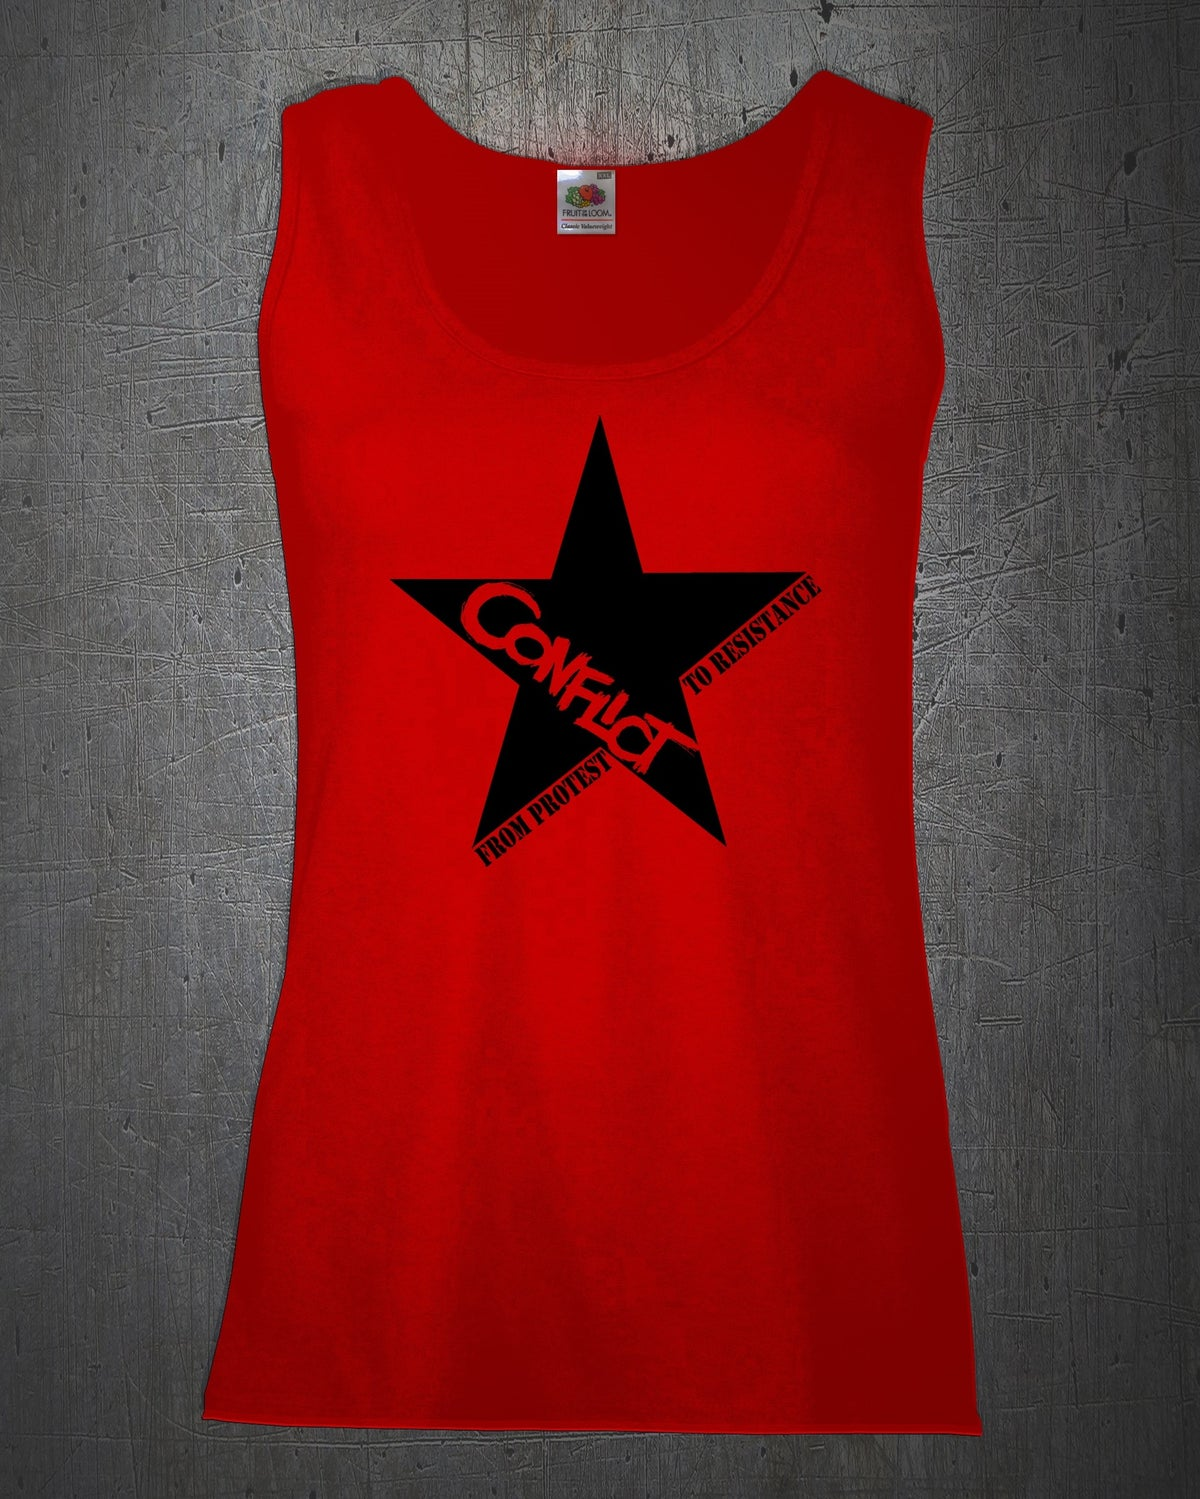 Image of 'From Protest to Resistance' female vest in red, white or black.